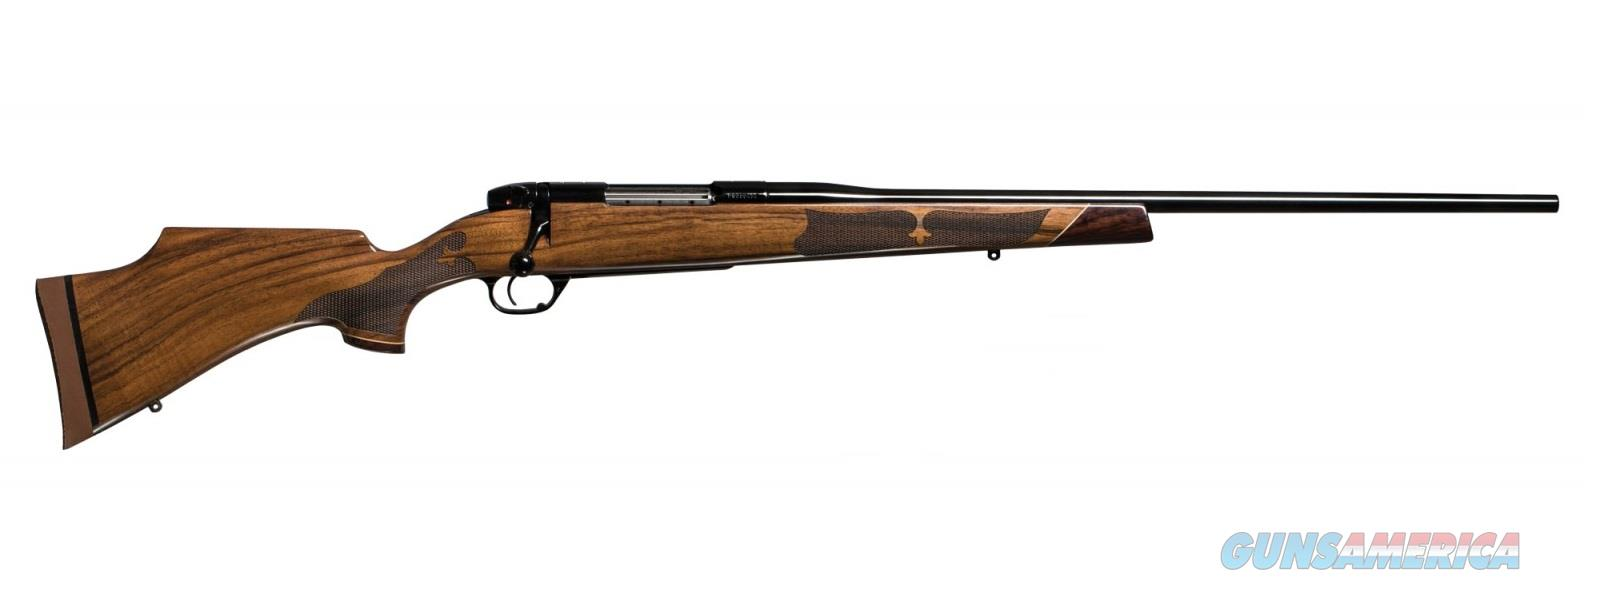 Weatherby MARKV CAMILLA 270WIN BL/WD 24 AA GLOSS AMERICAN WALNUT  Guns > Rifles > Weatherby Rifles > Sporting